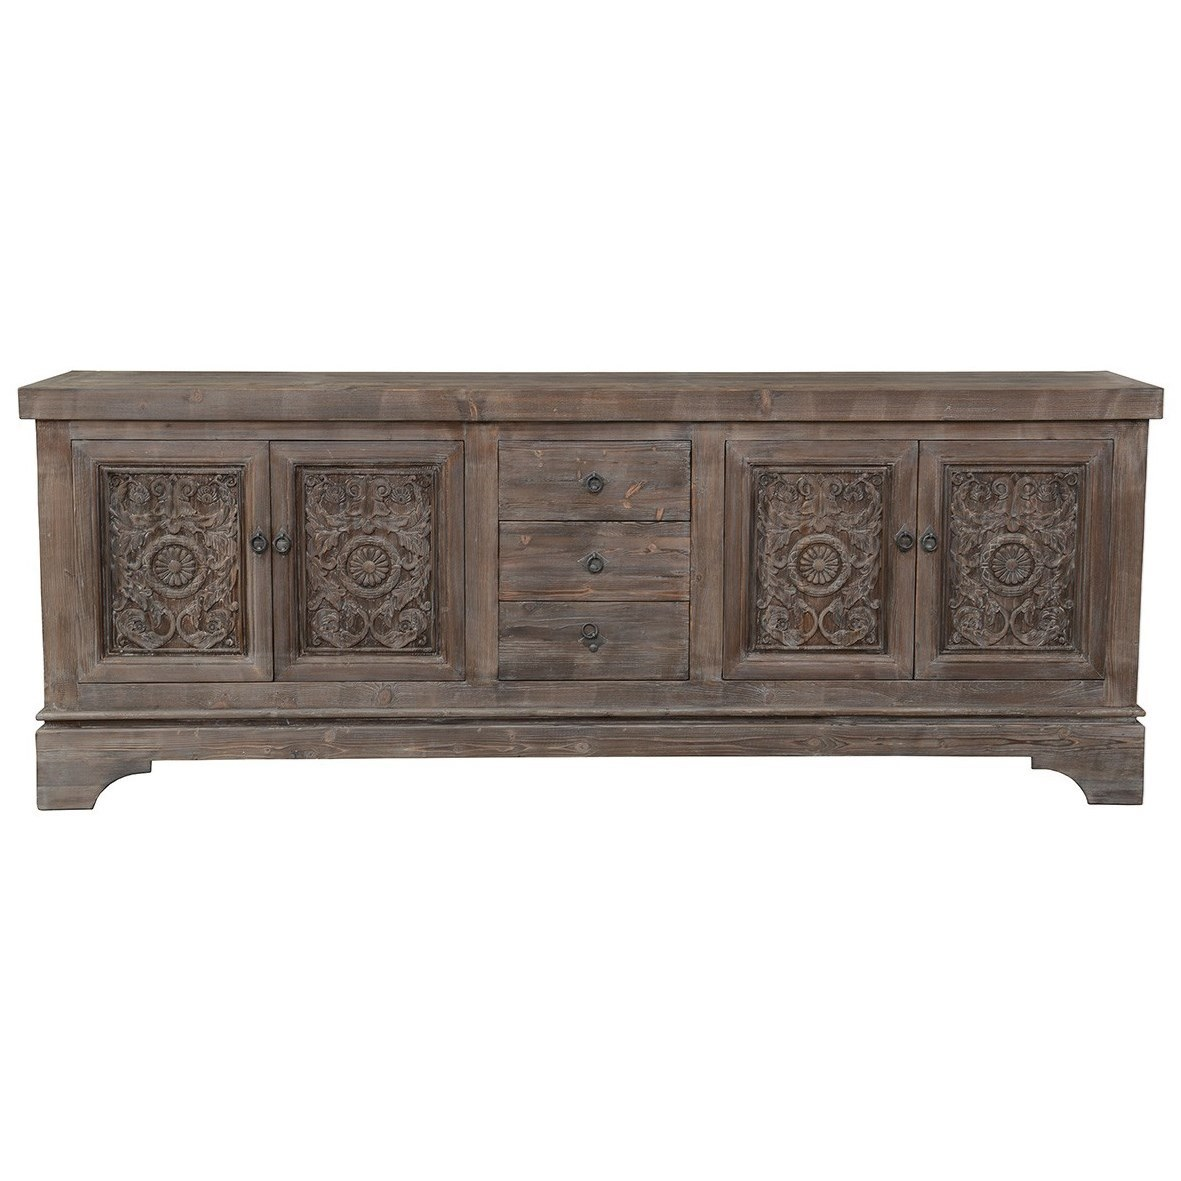 Amita Mocha Sideboard by Classic Home at Alison Craig Home Furnishings